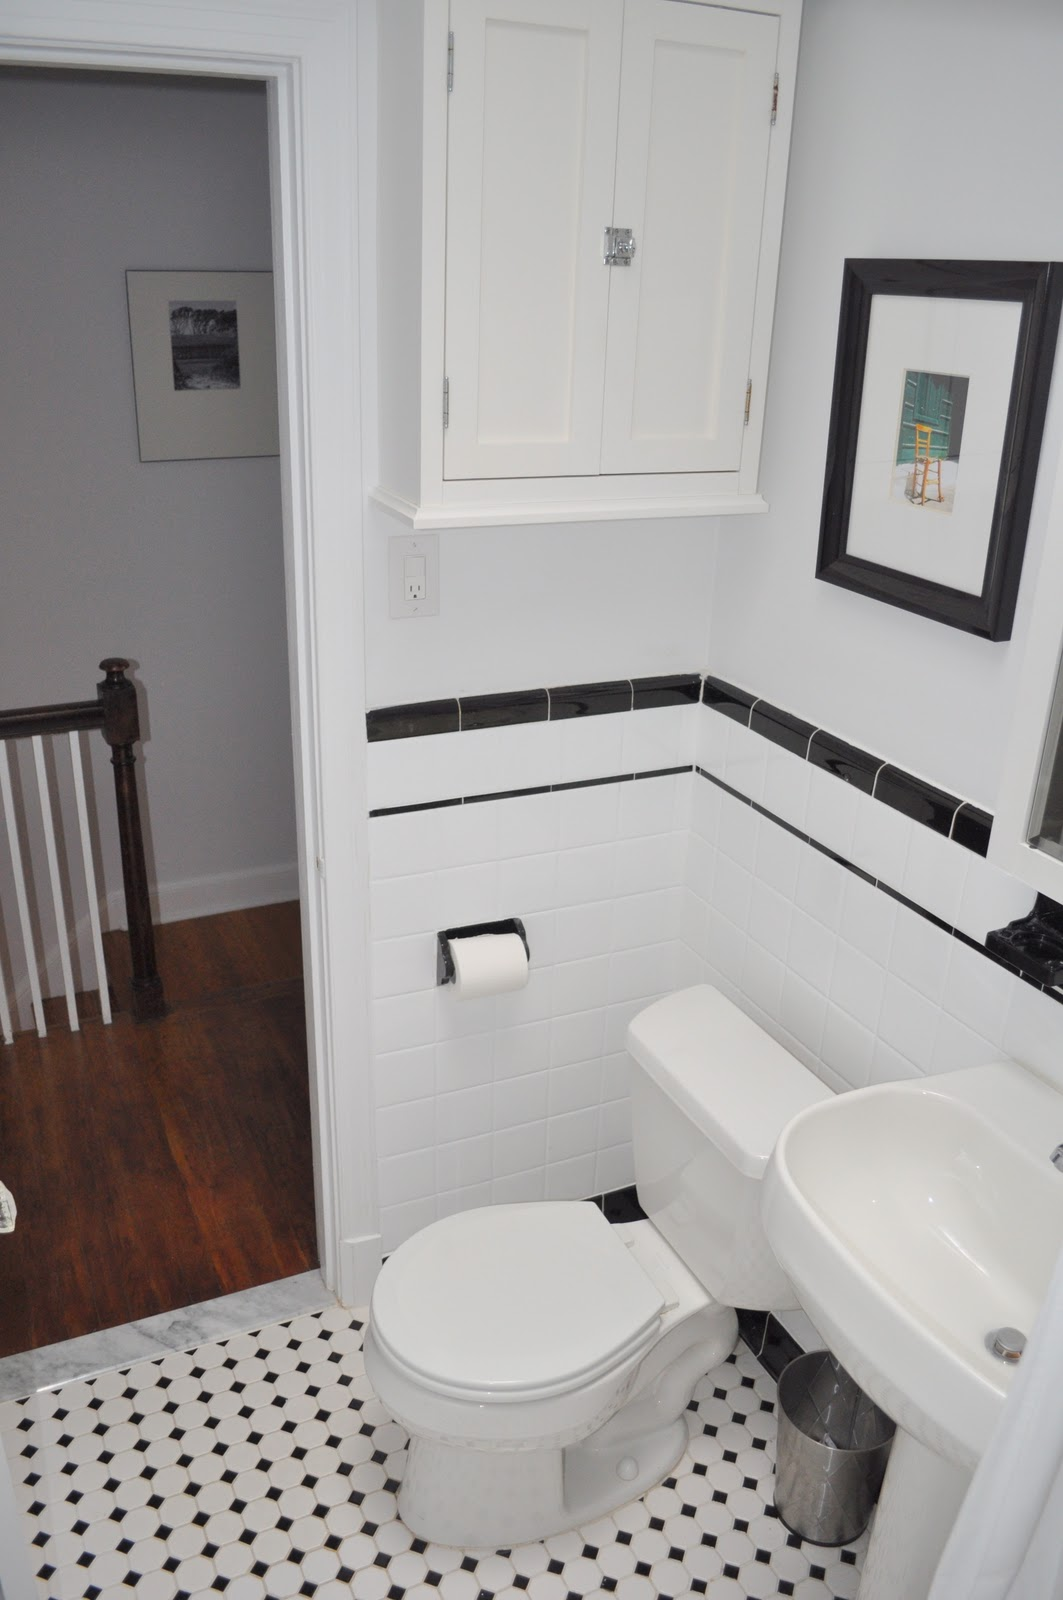 Tantalizing Floor and Wall Design With White Tile Bathroom Themes